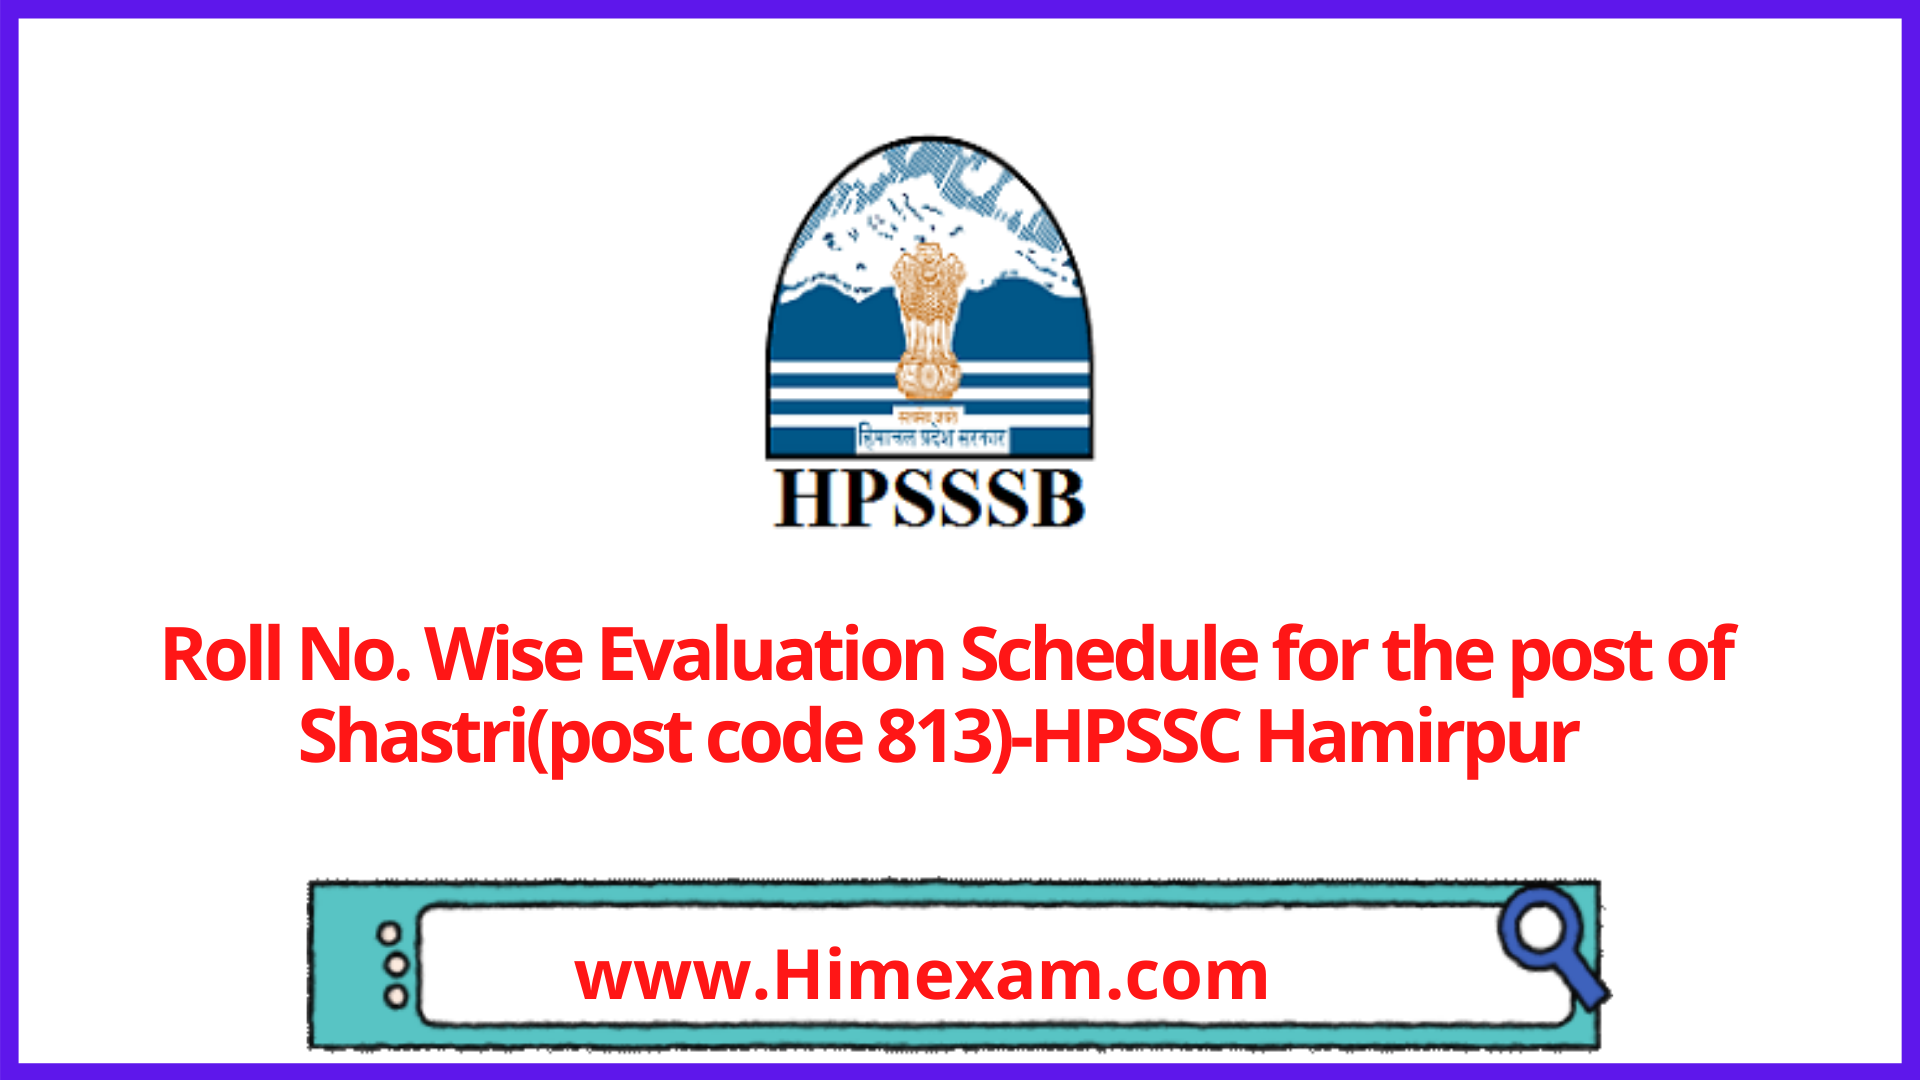 Roll No. Wise Evaluation Schedule for the post of Shastri(post code 813)-HPSSC Hamirpur